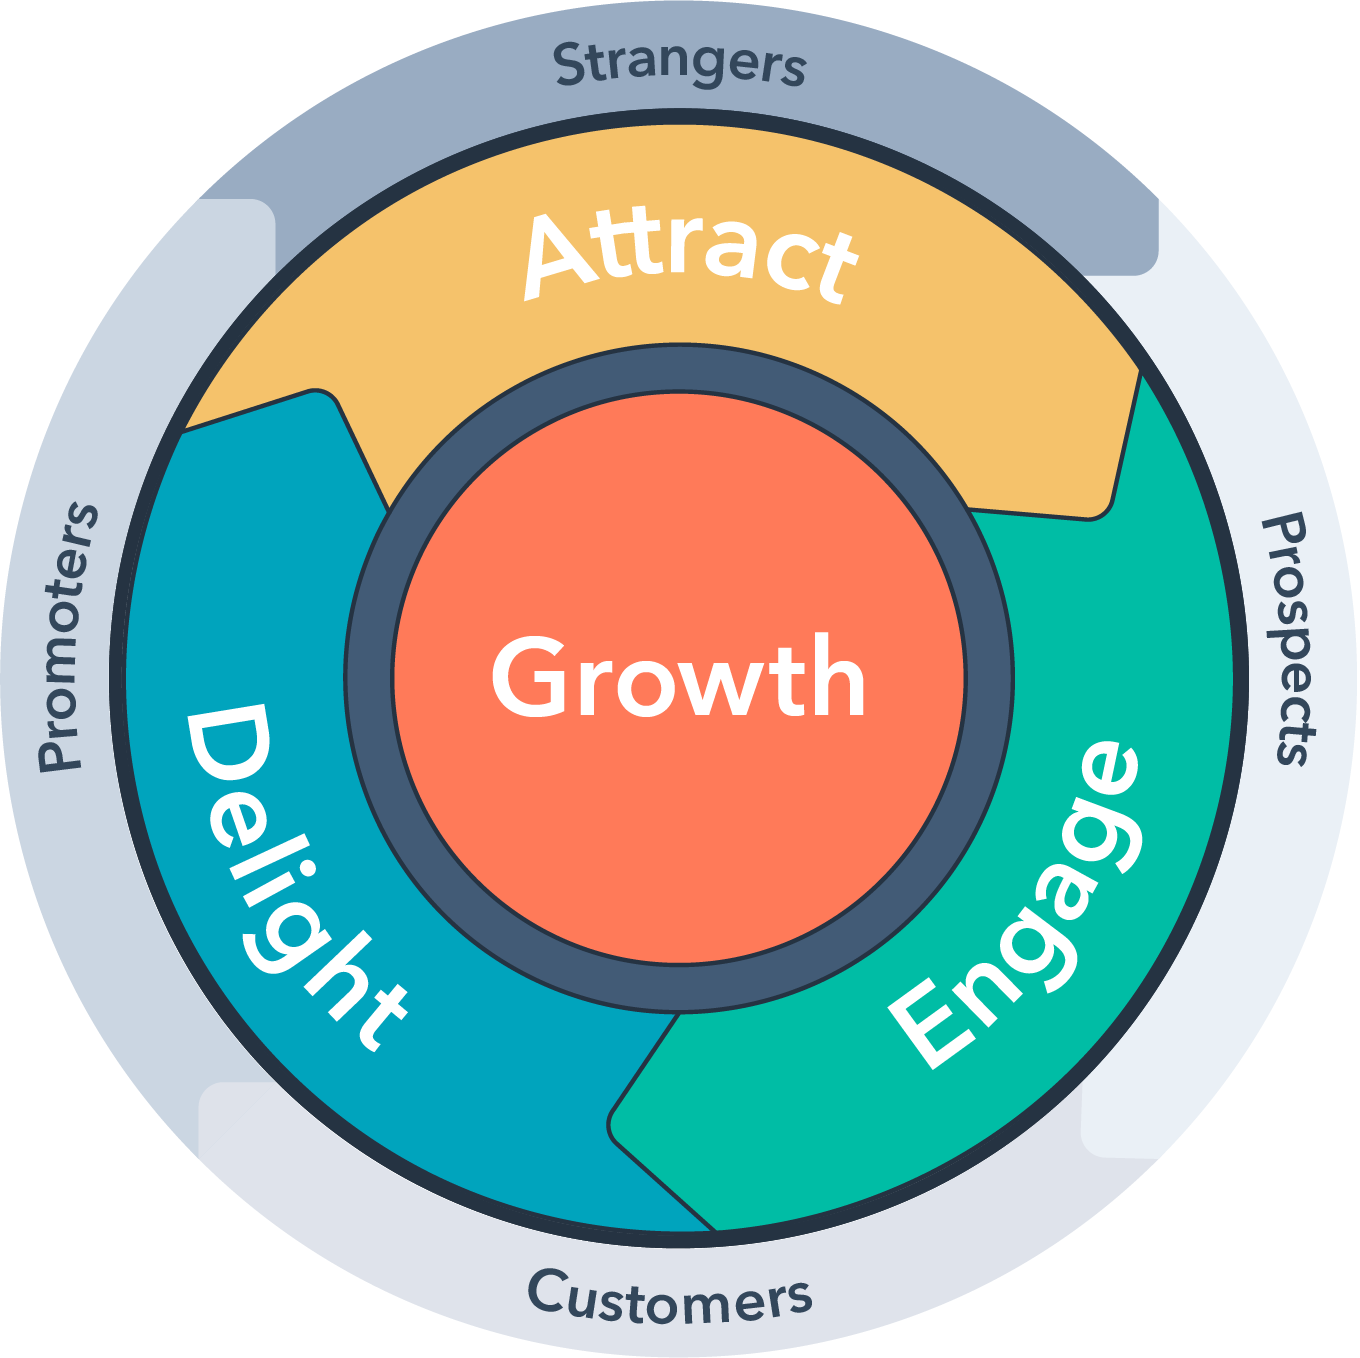 A flywheel graphic with customers in the center circle and attract, engage, and delight in the outer ring